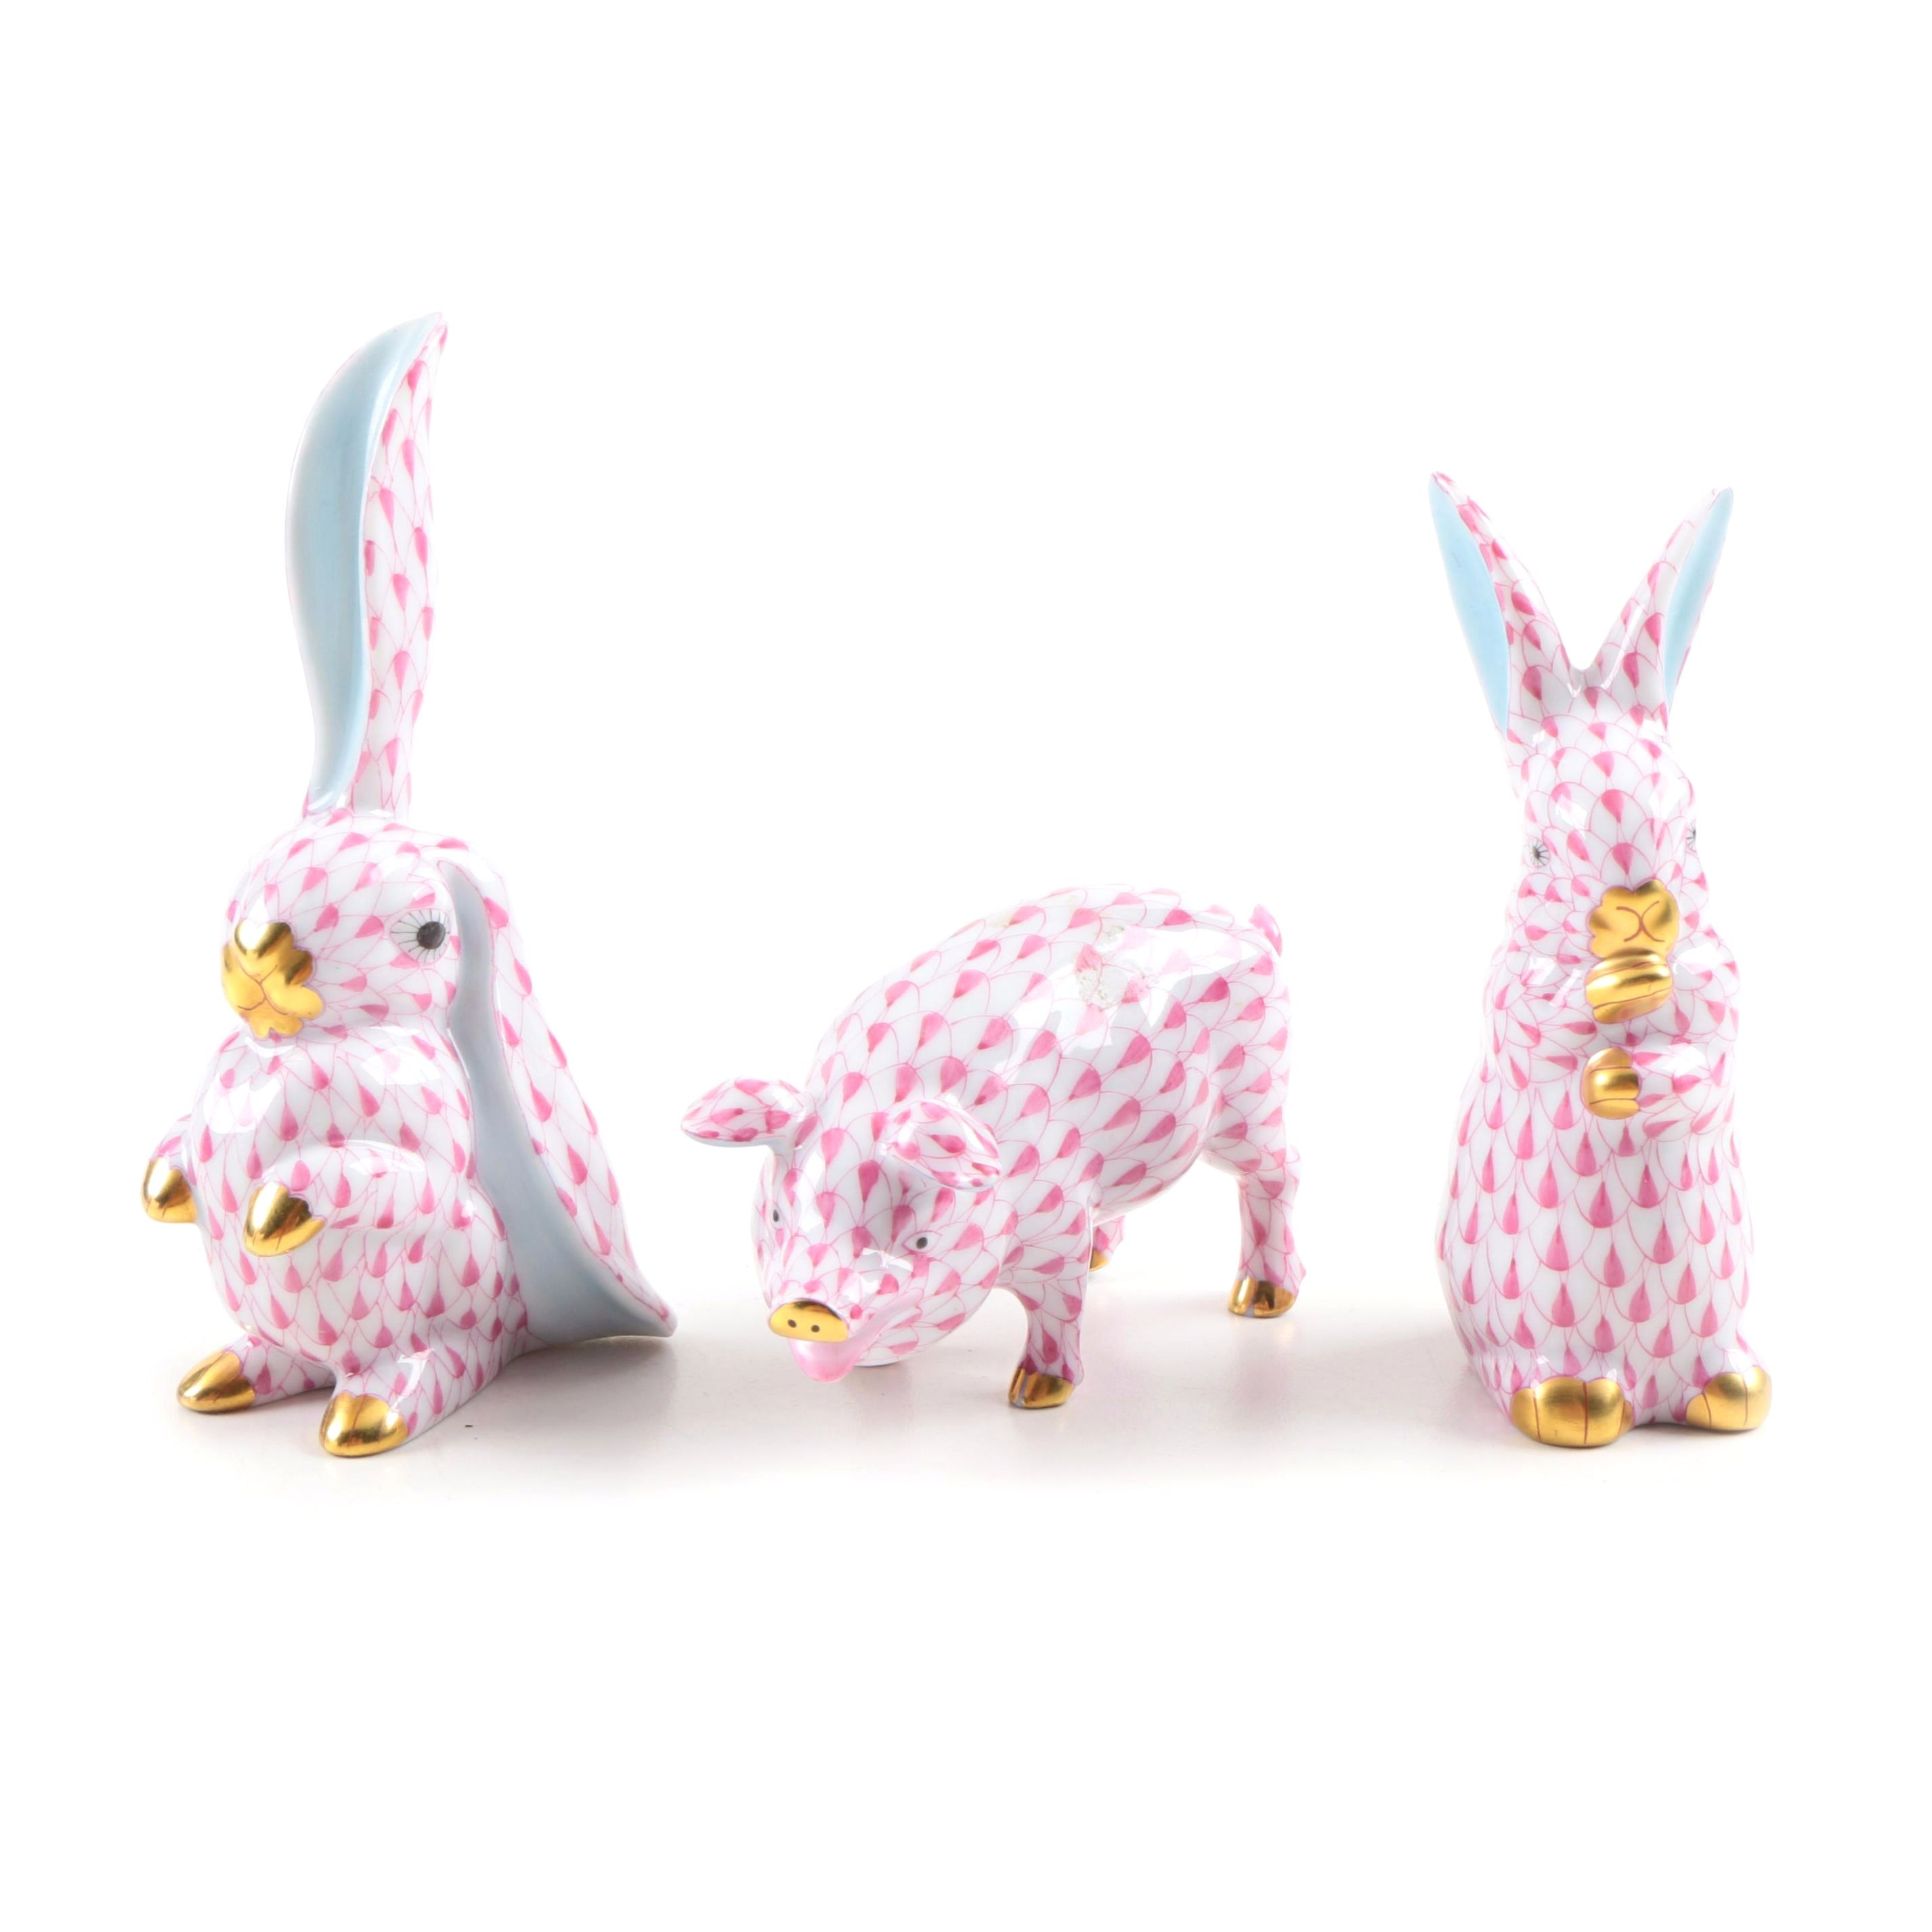 Herend Porcelain Pig and Rabbit Figurines in Fishnet Pink